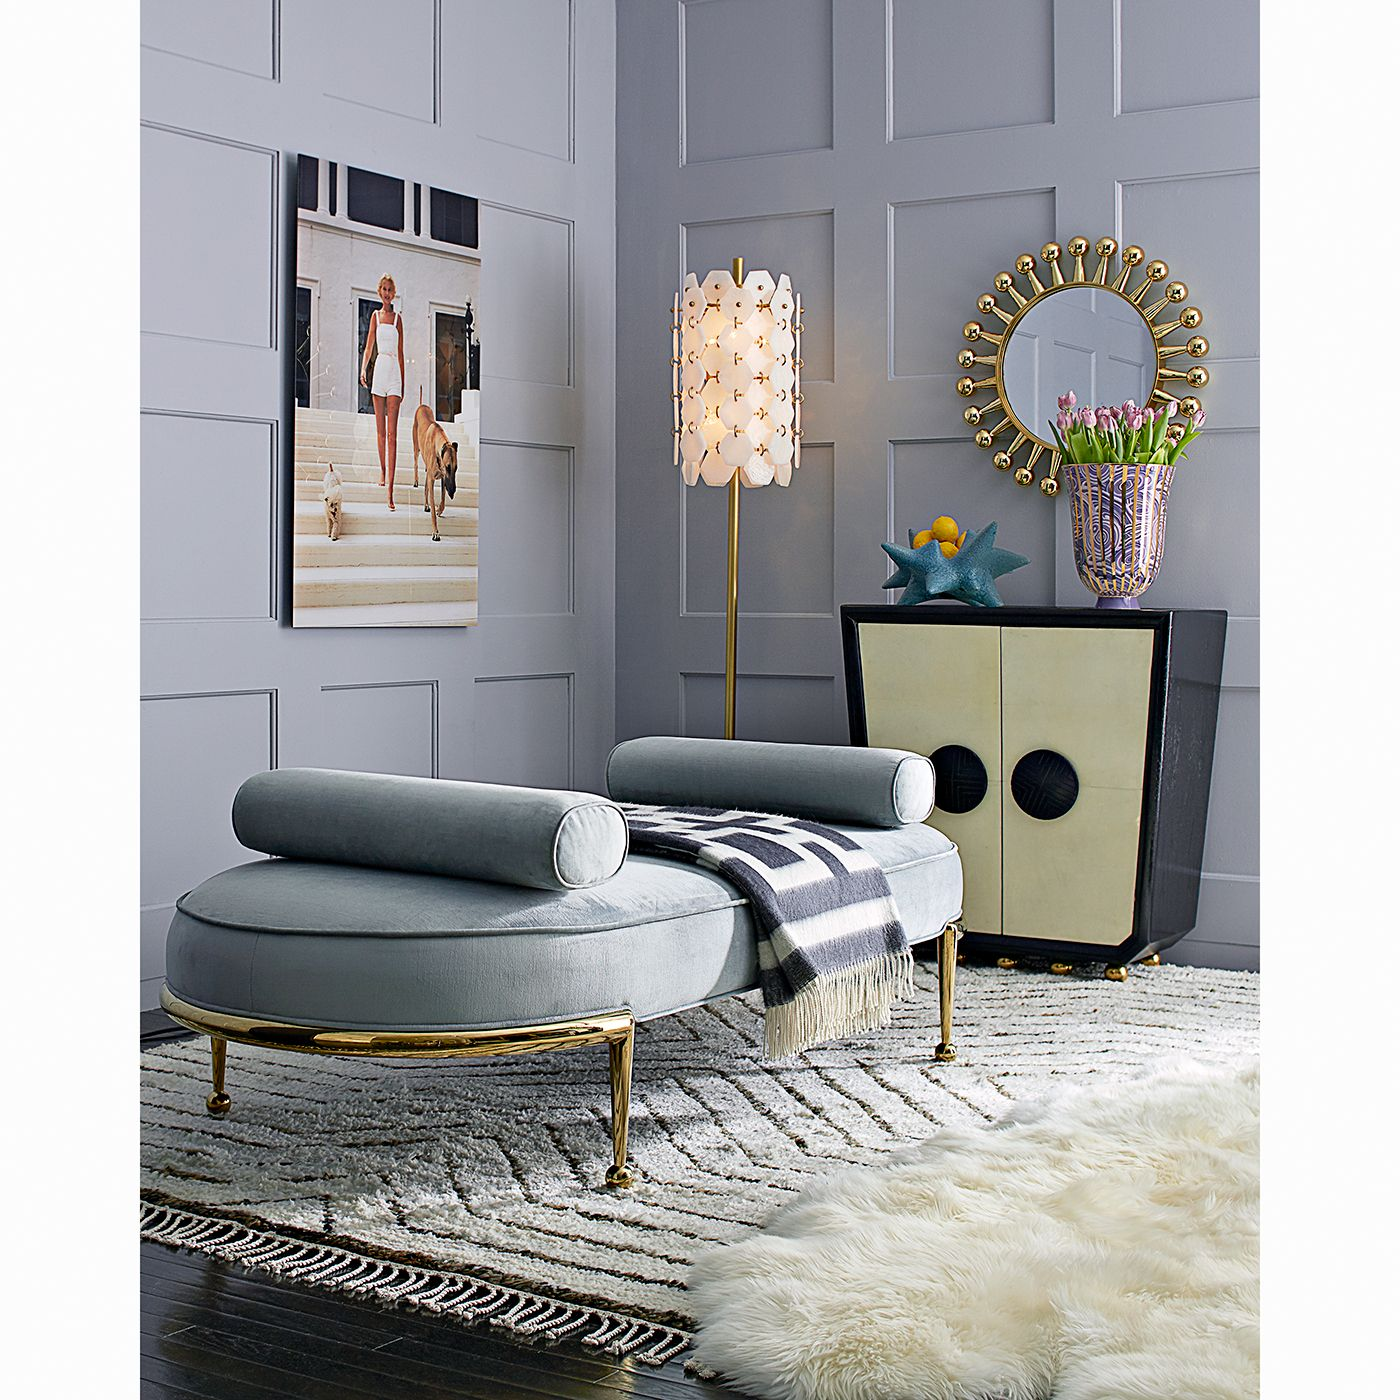 Add unexpected polish to a living room with the jonathan adler charade capsule daybed by placing it opposite a sofa or bring a neglected corner to